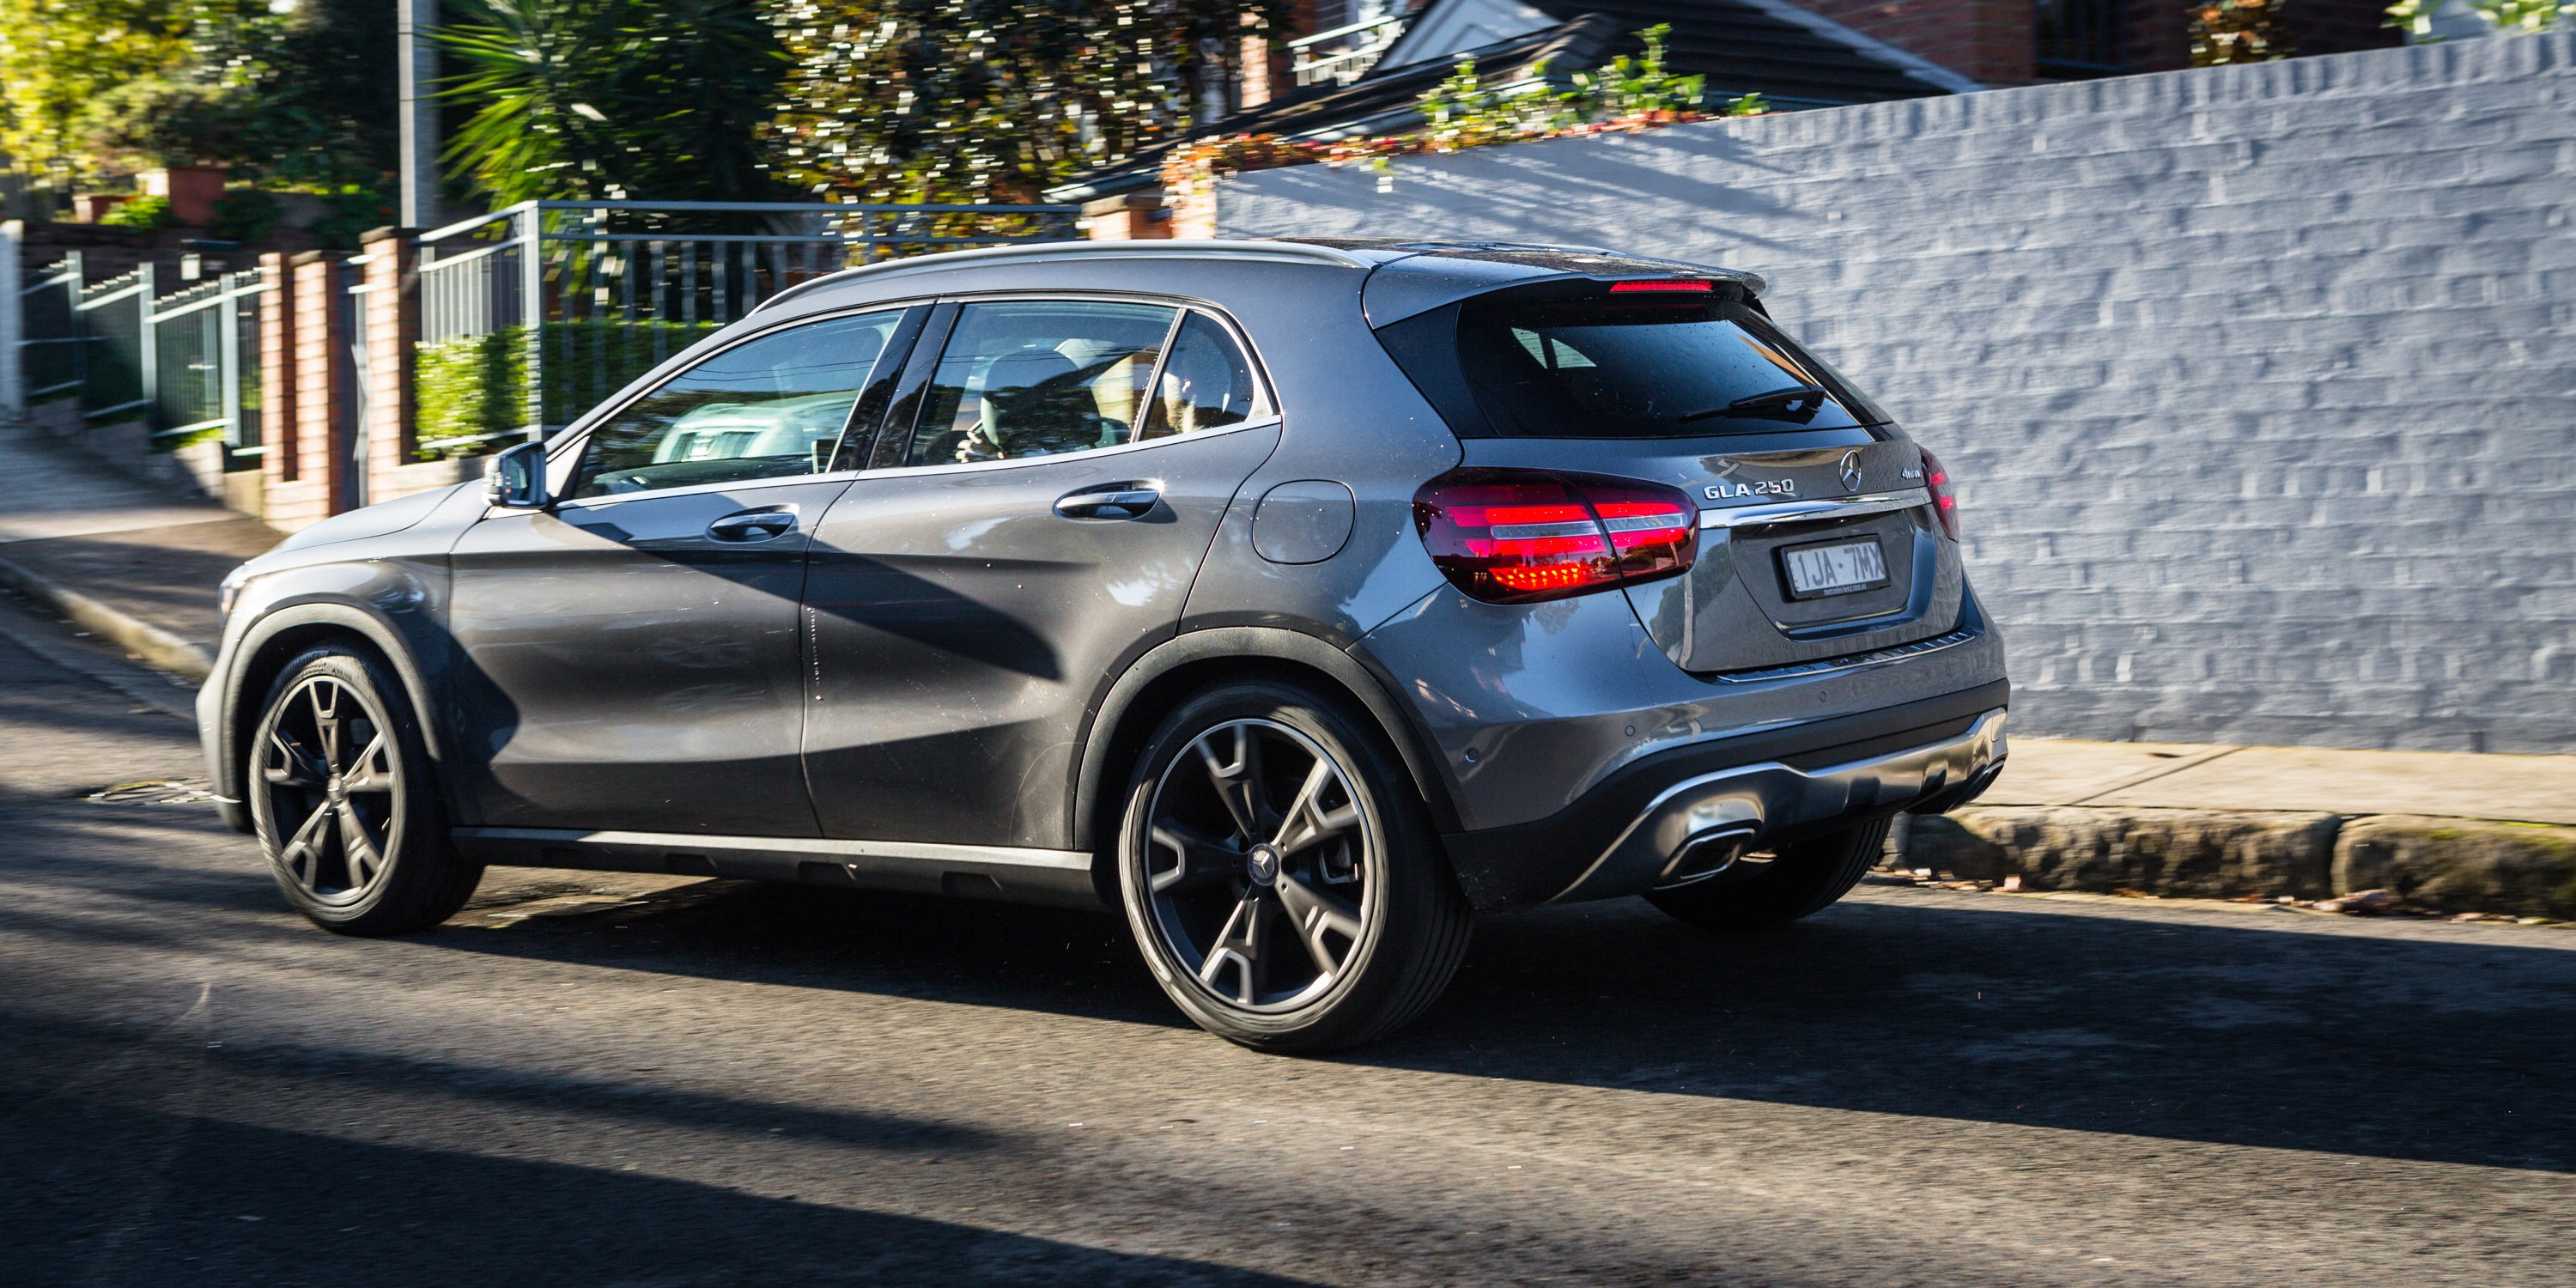 2017 mercedes benz gla250 4matic review caradvice